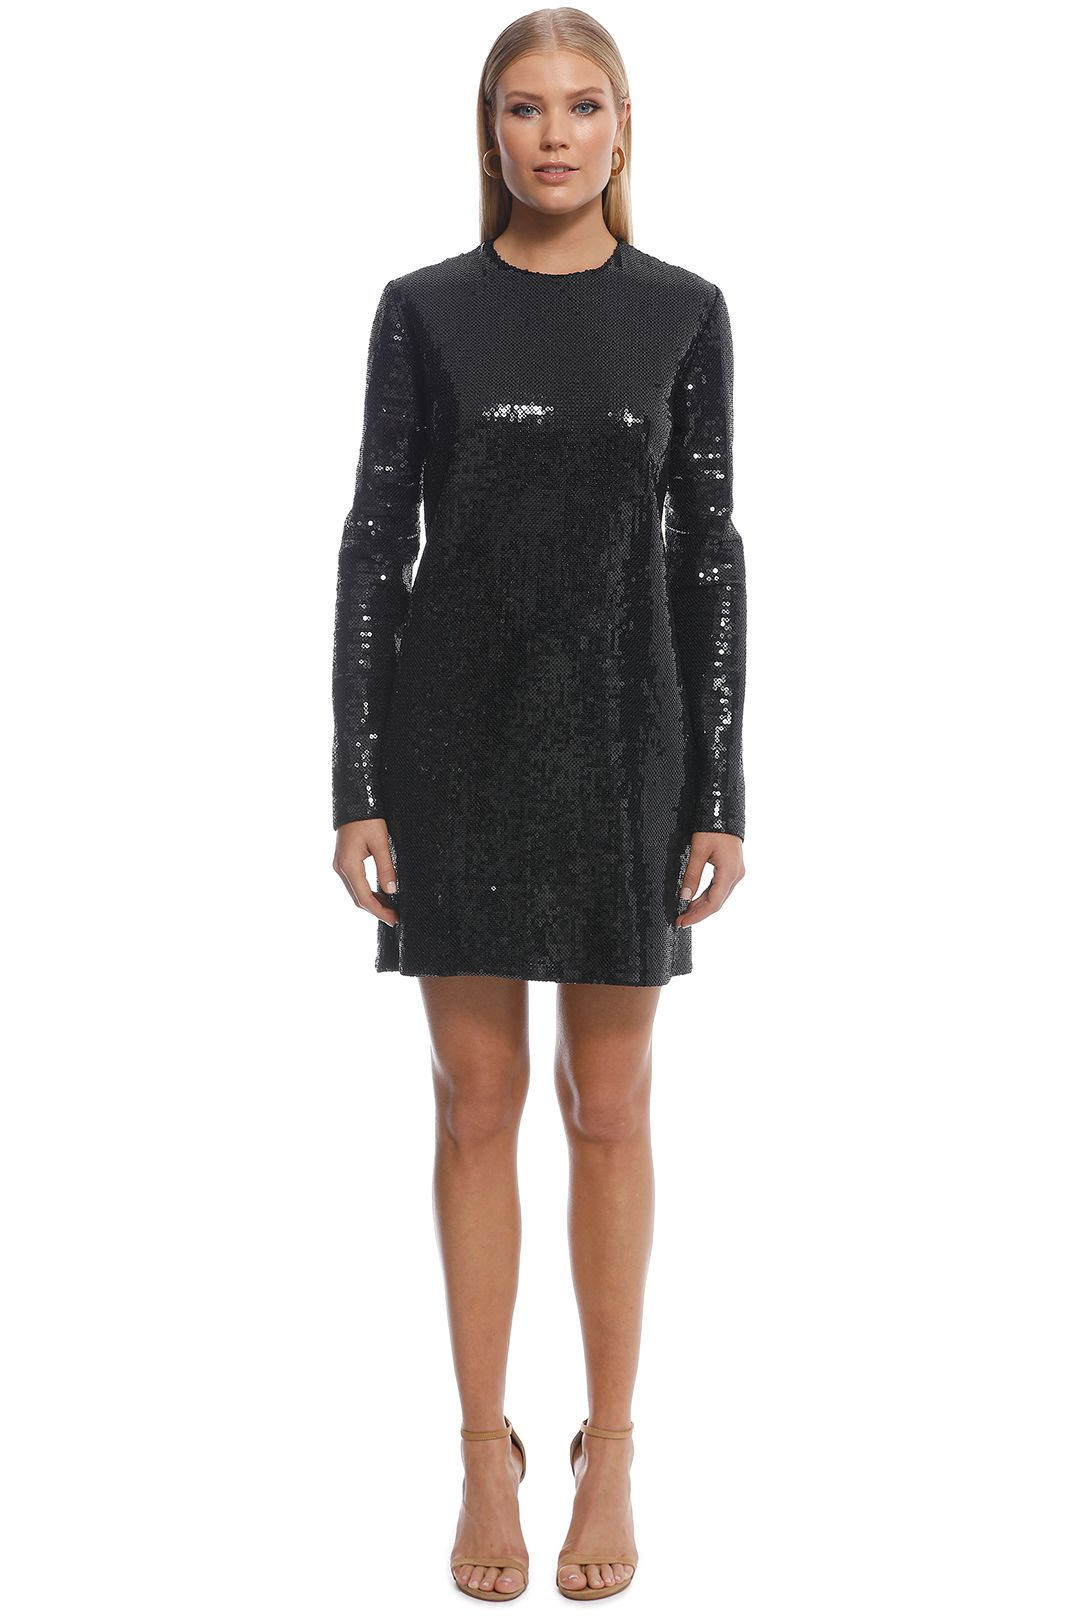 Ellery - Sequin LS Mini Dress - Black - Front